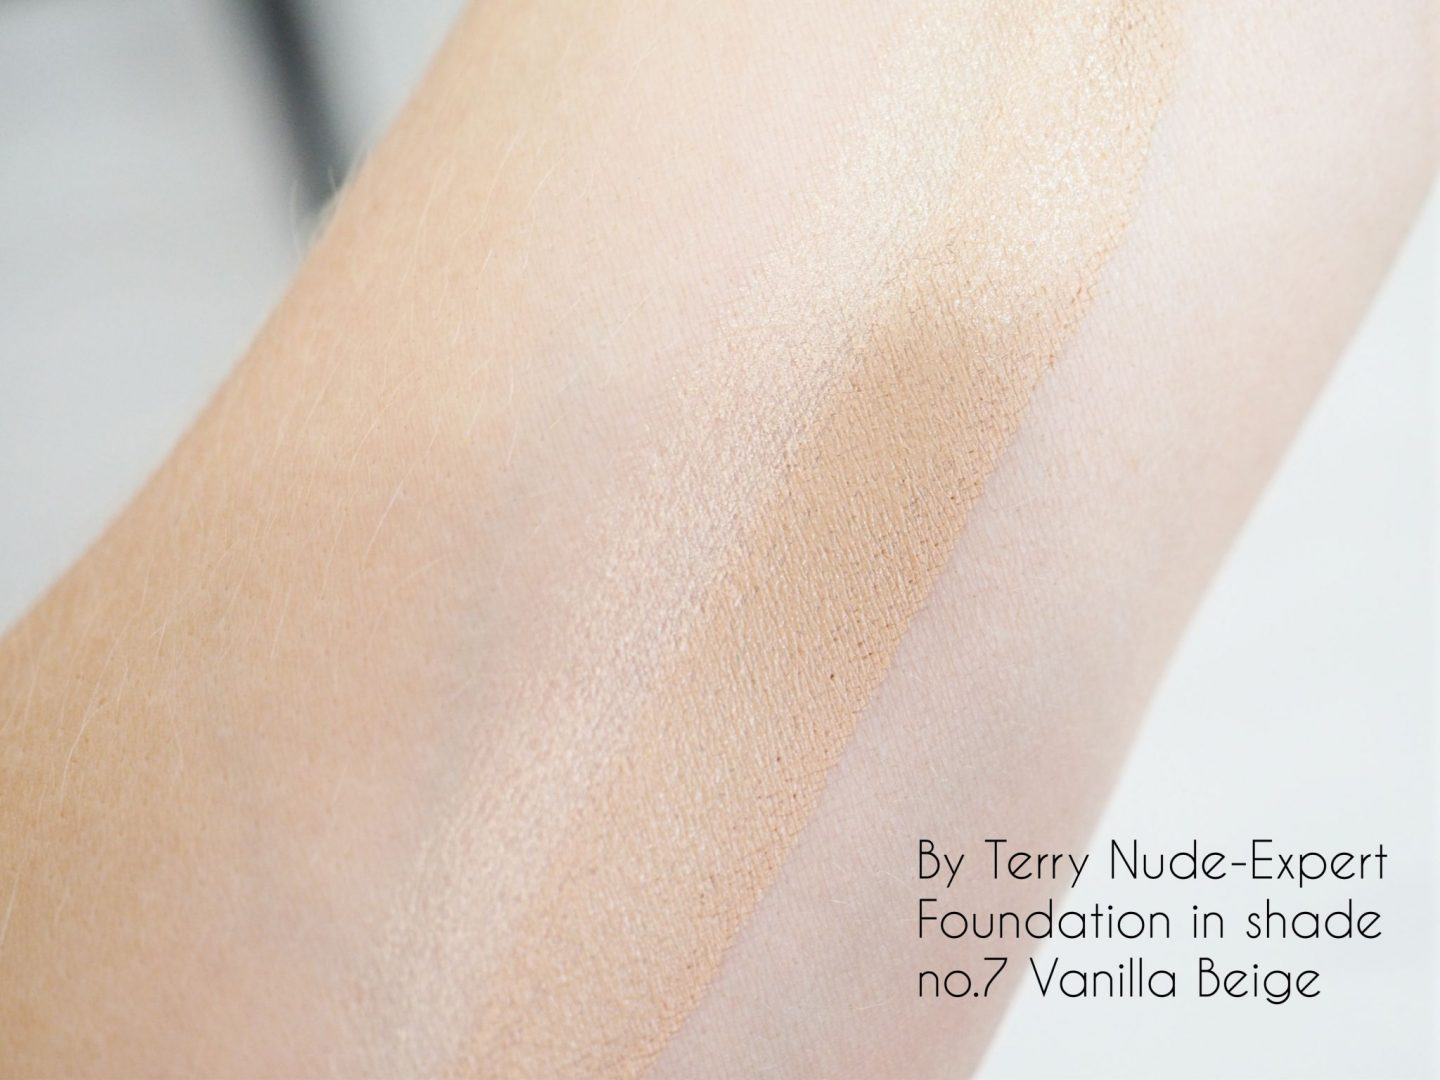 By Terry Nude-Expert Foundation shade no.7 vanilla beige swatch